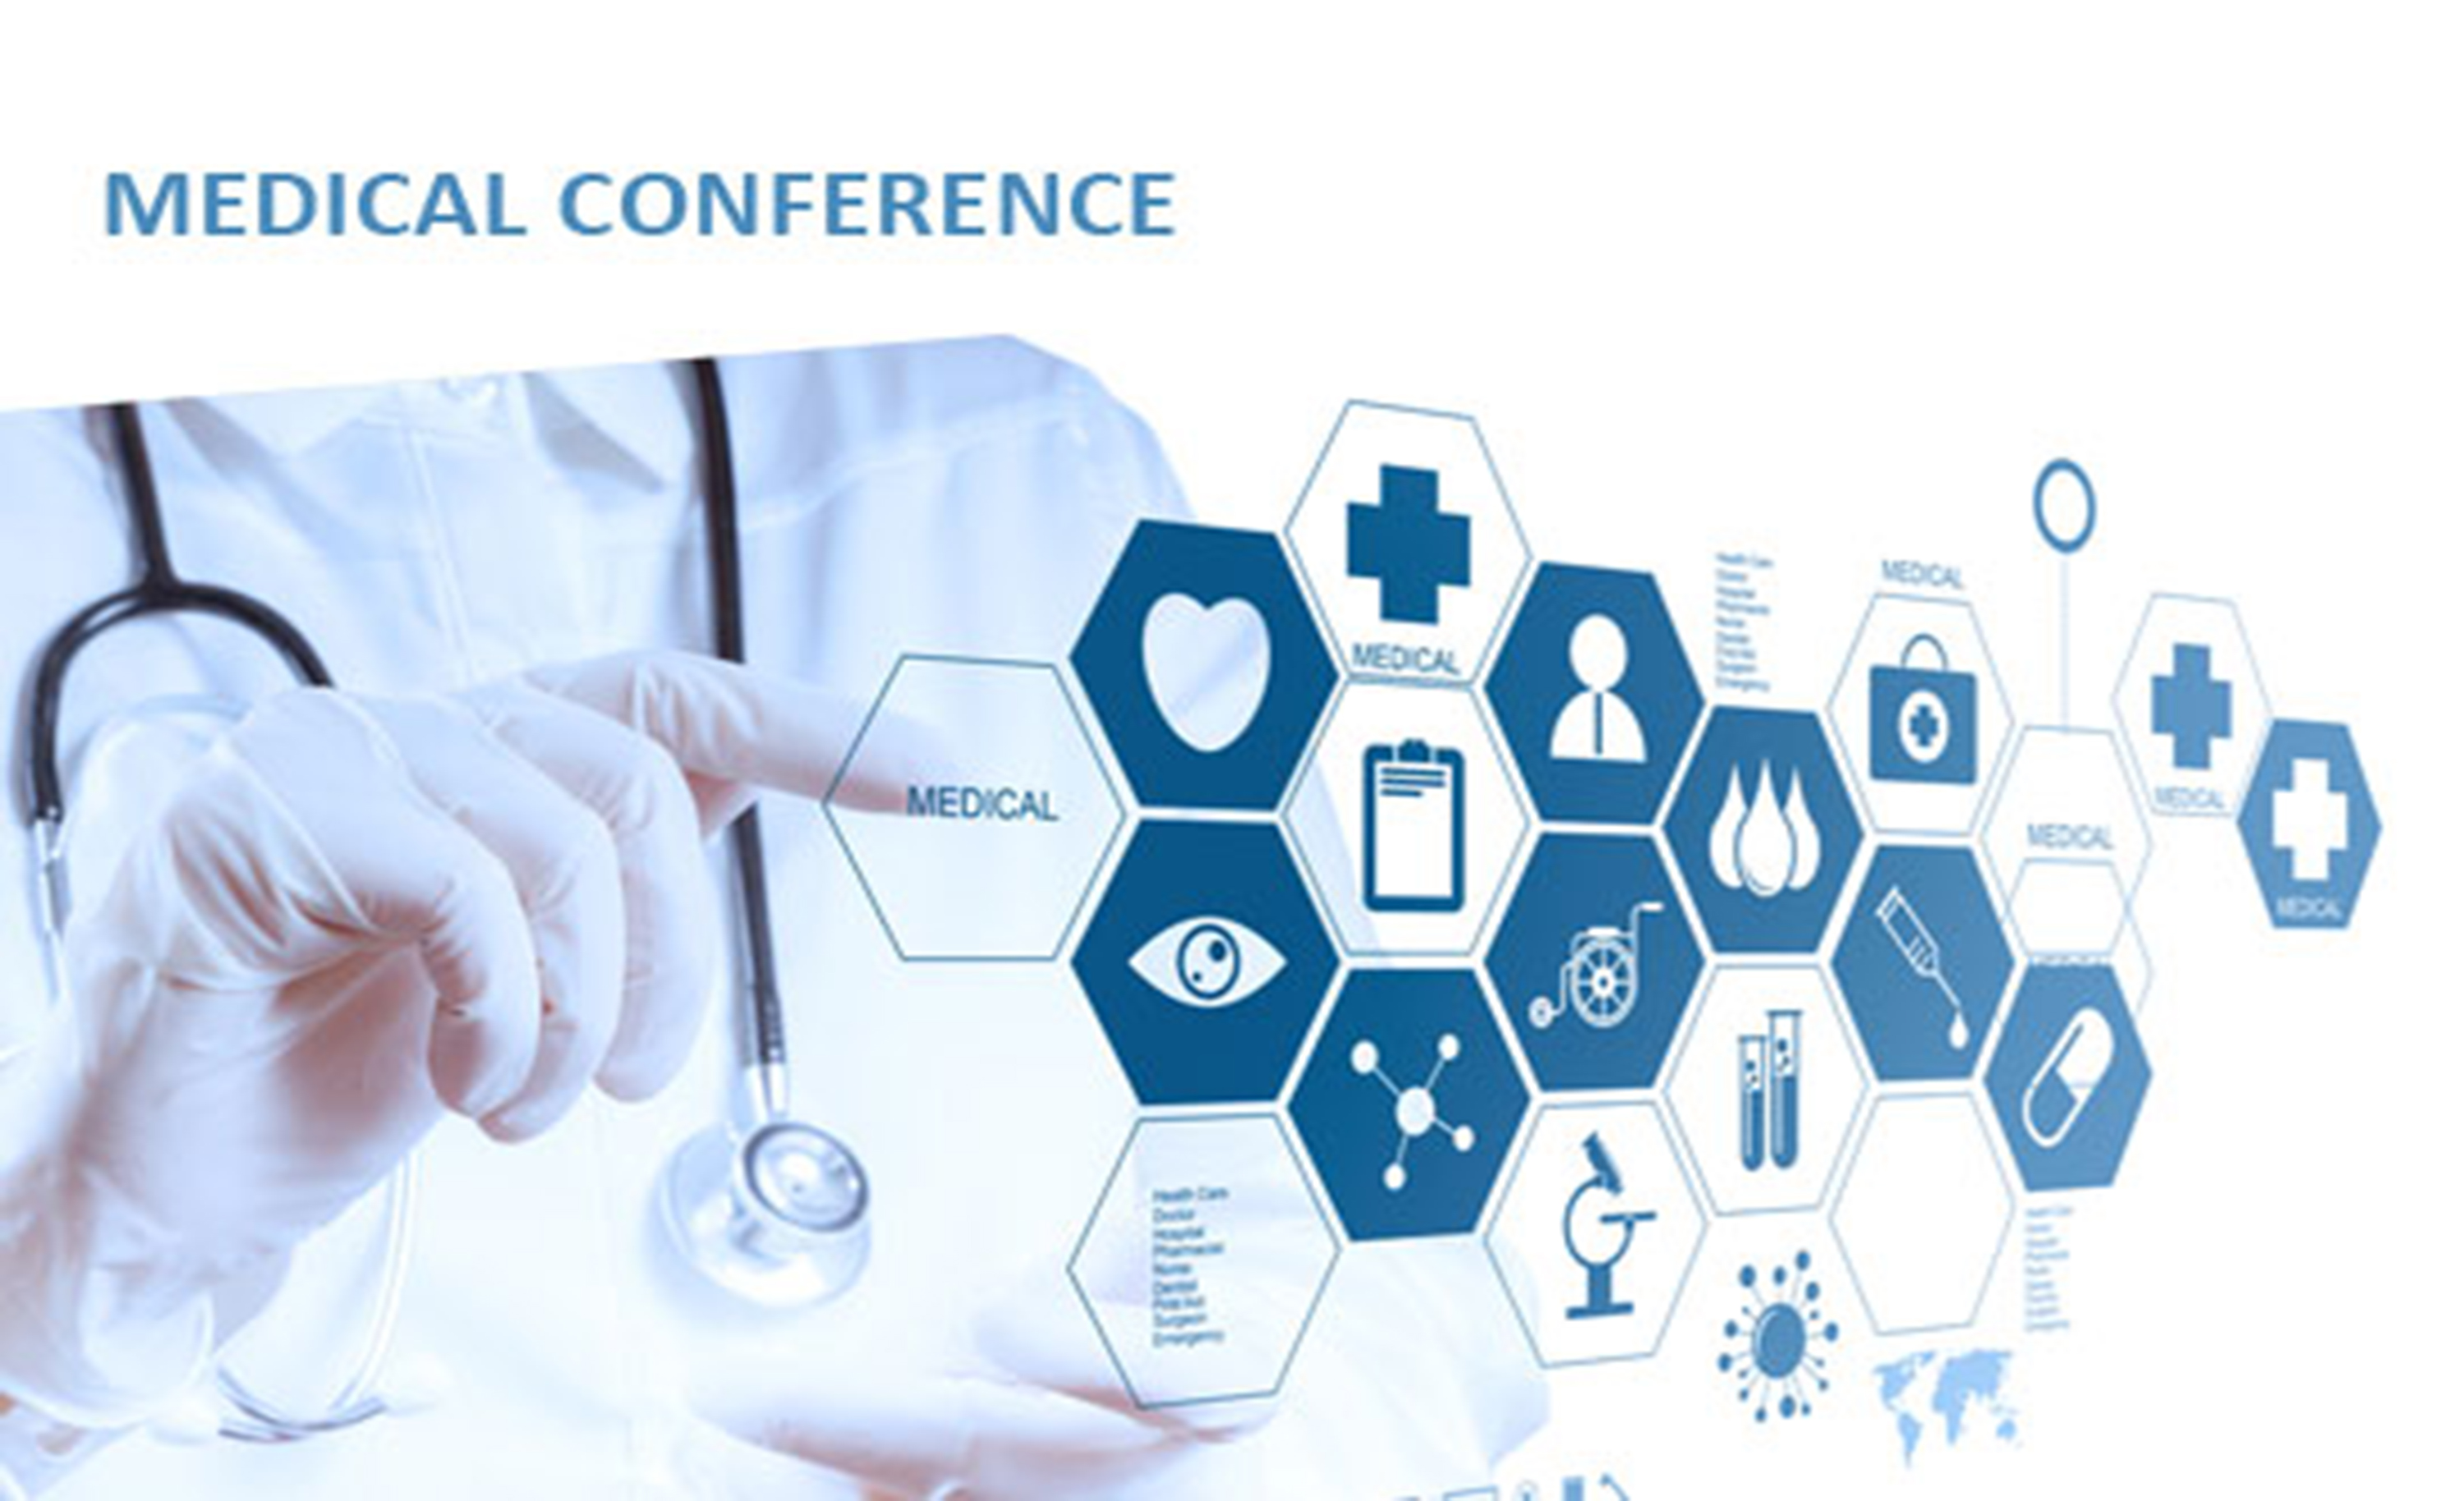 https://ptscout.com/wp-content/uploads/2015/11/medical_conferencee.jpg